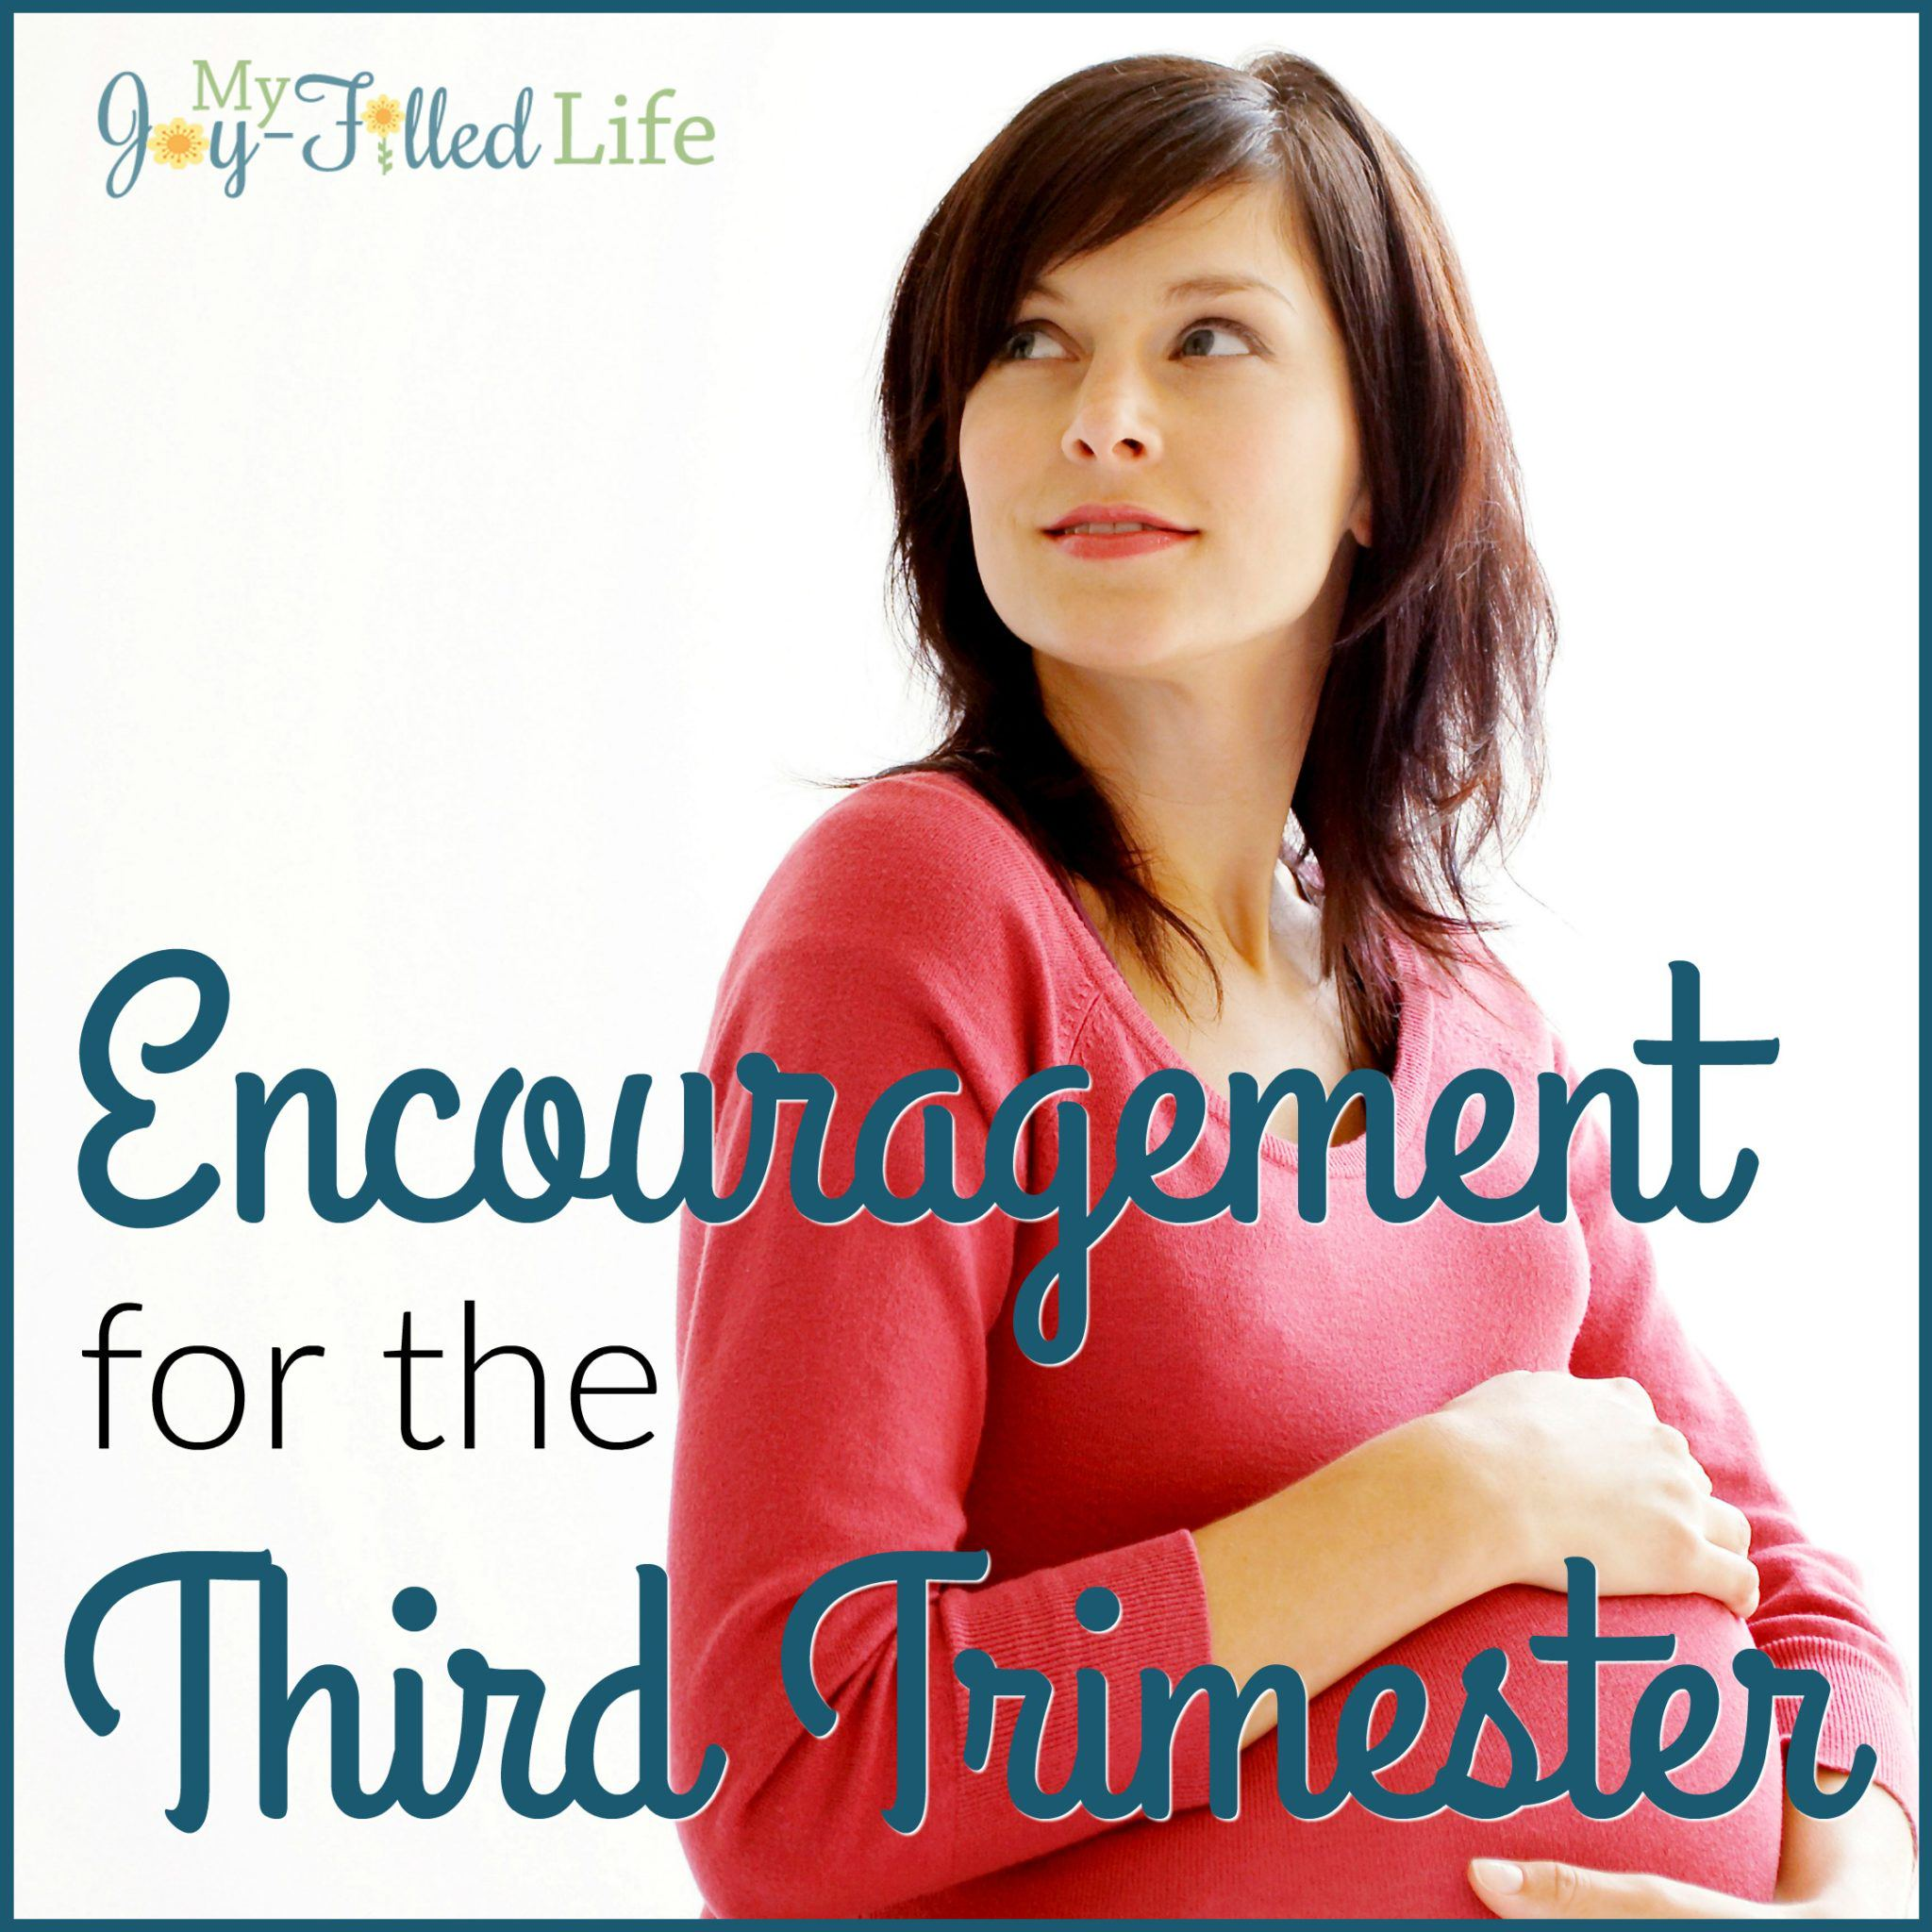 Encouragement for the Third Trimester